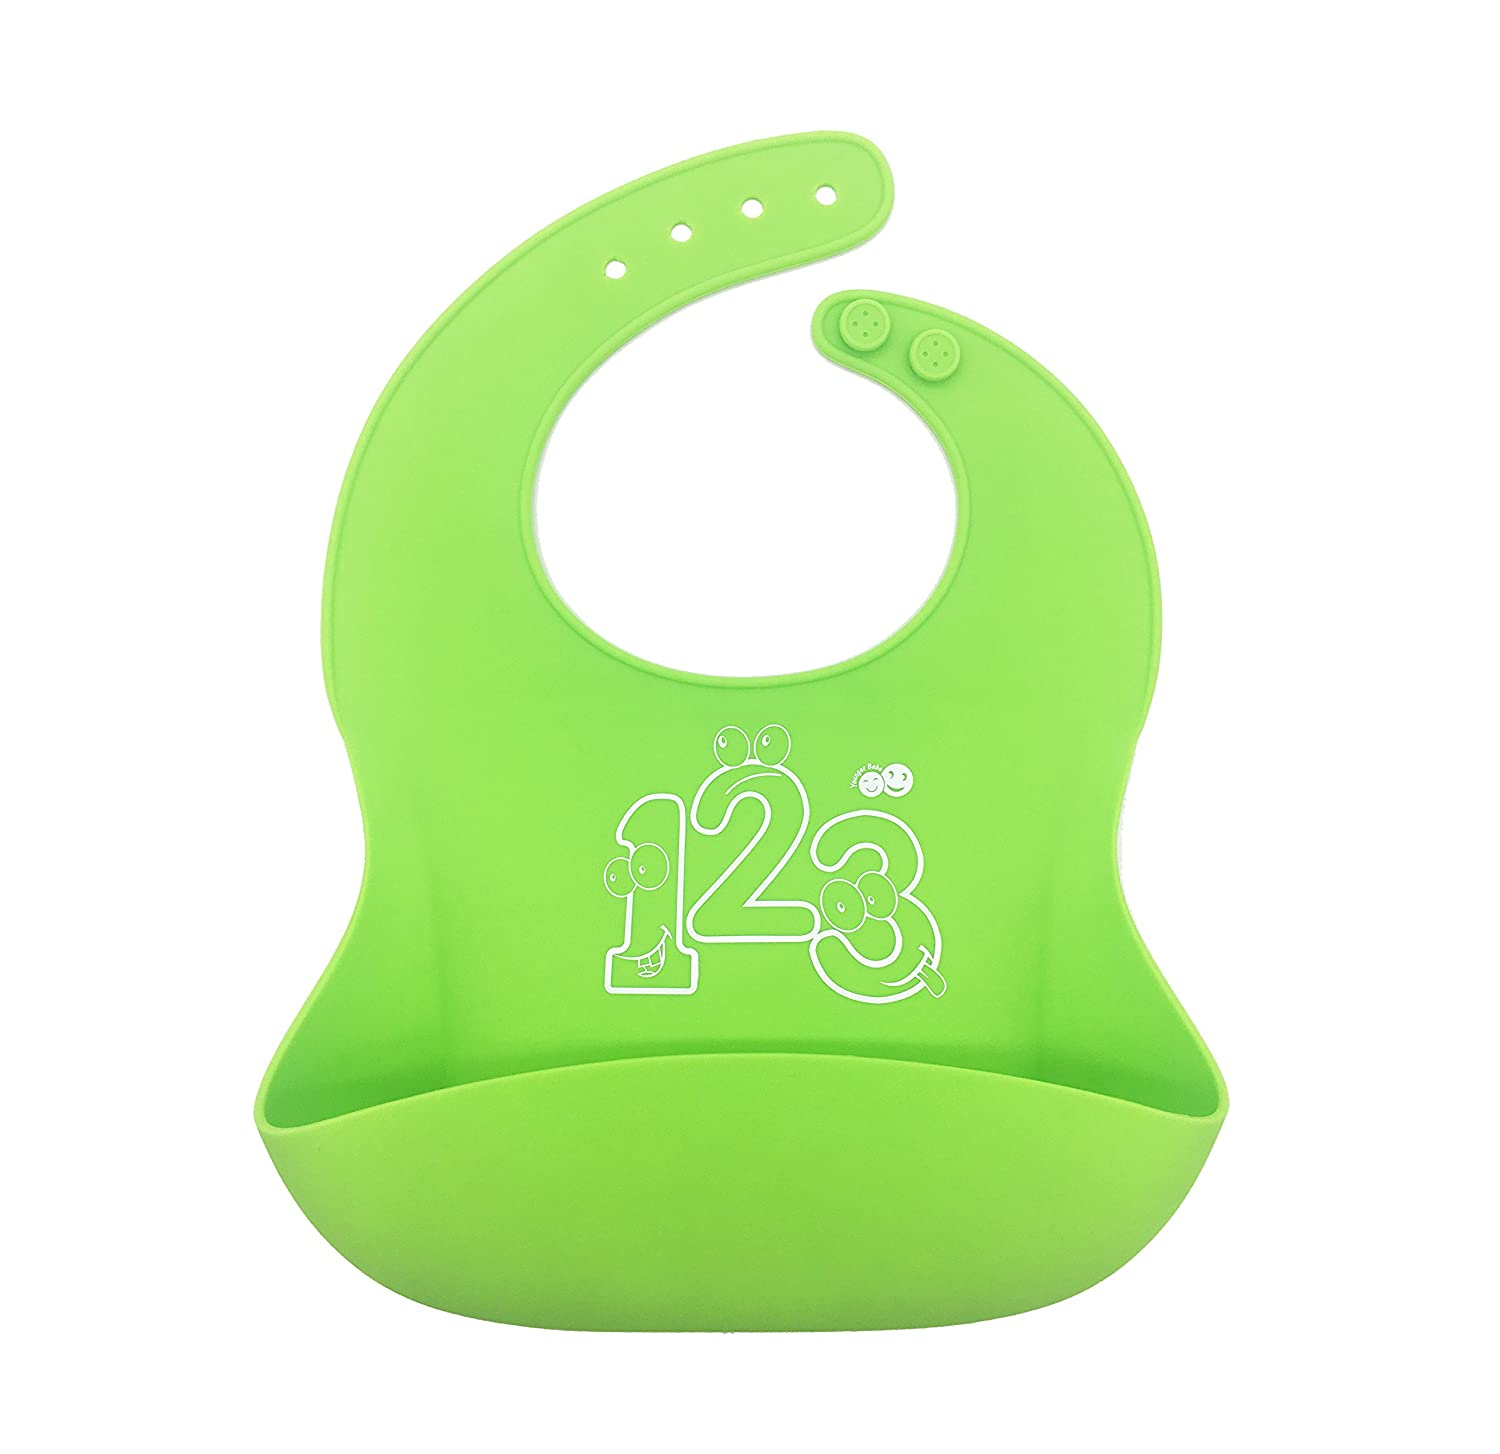 Soft Waterproof Silicone Baby Bib Easily Wipes Clean & Quick Drying (Blue) YoungerBeBe